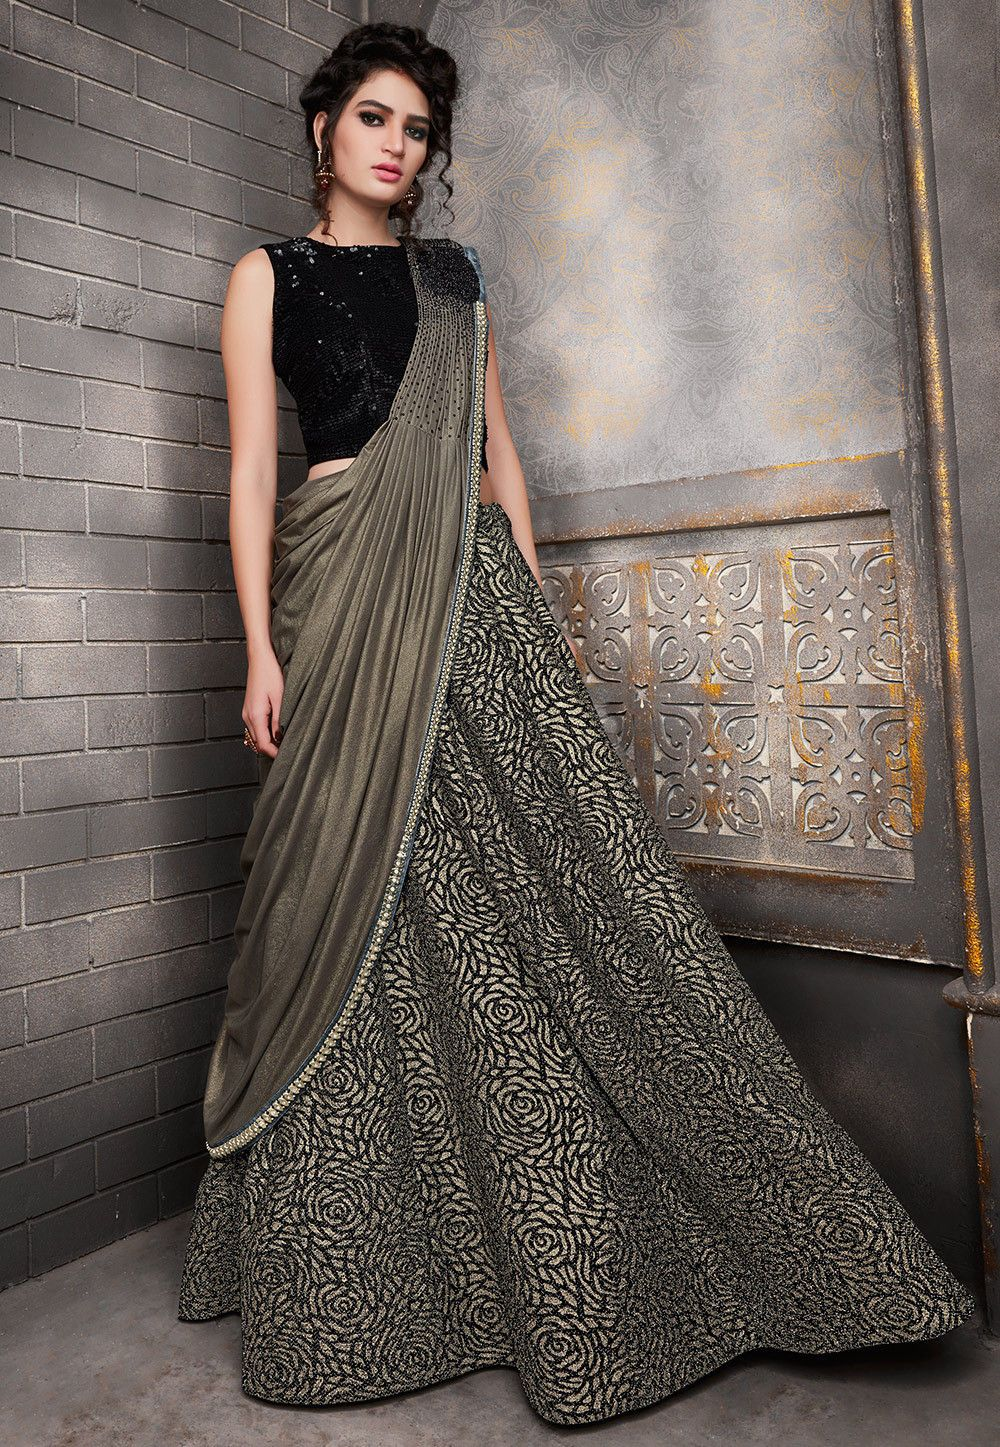 35e6a76e23 Buy Embroidered Lycra Circular Lehenga in Black and Beige online, Item  code: LXW366, Color: Black, Beige, Occasion: Party, Wedding, Work:  Contemporary, ...